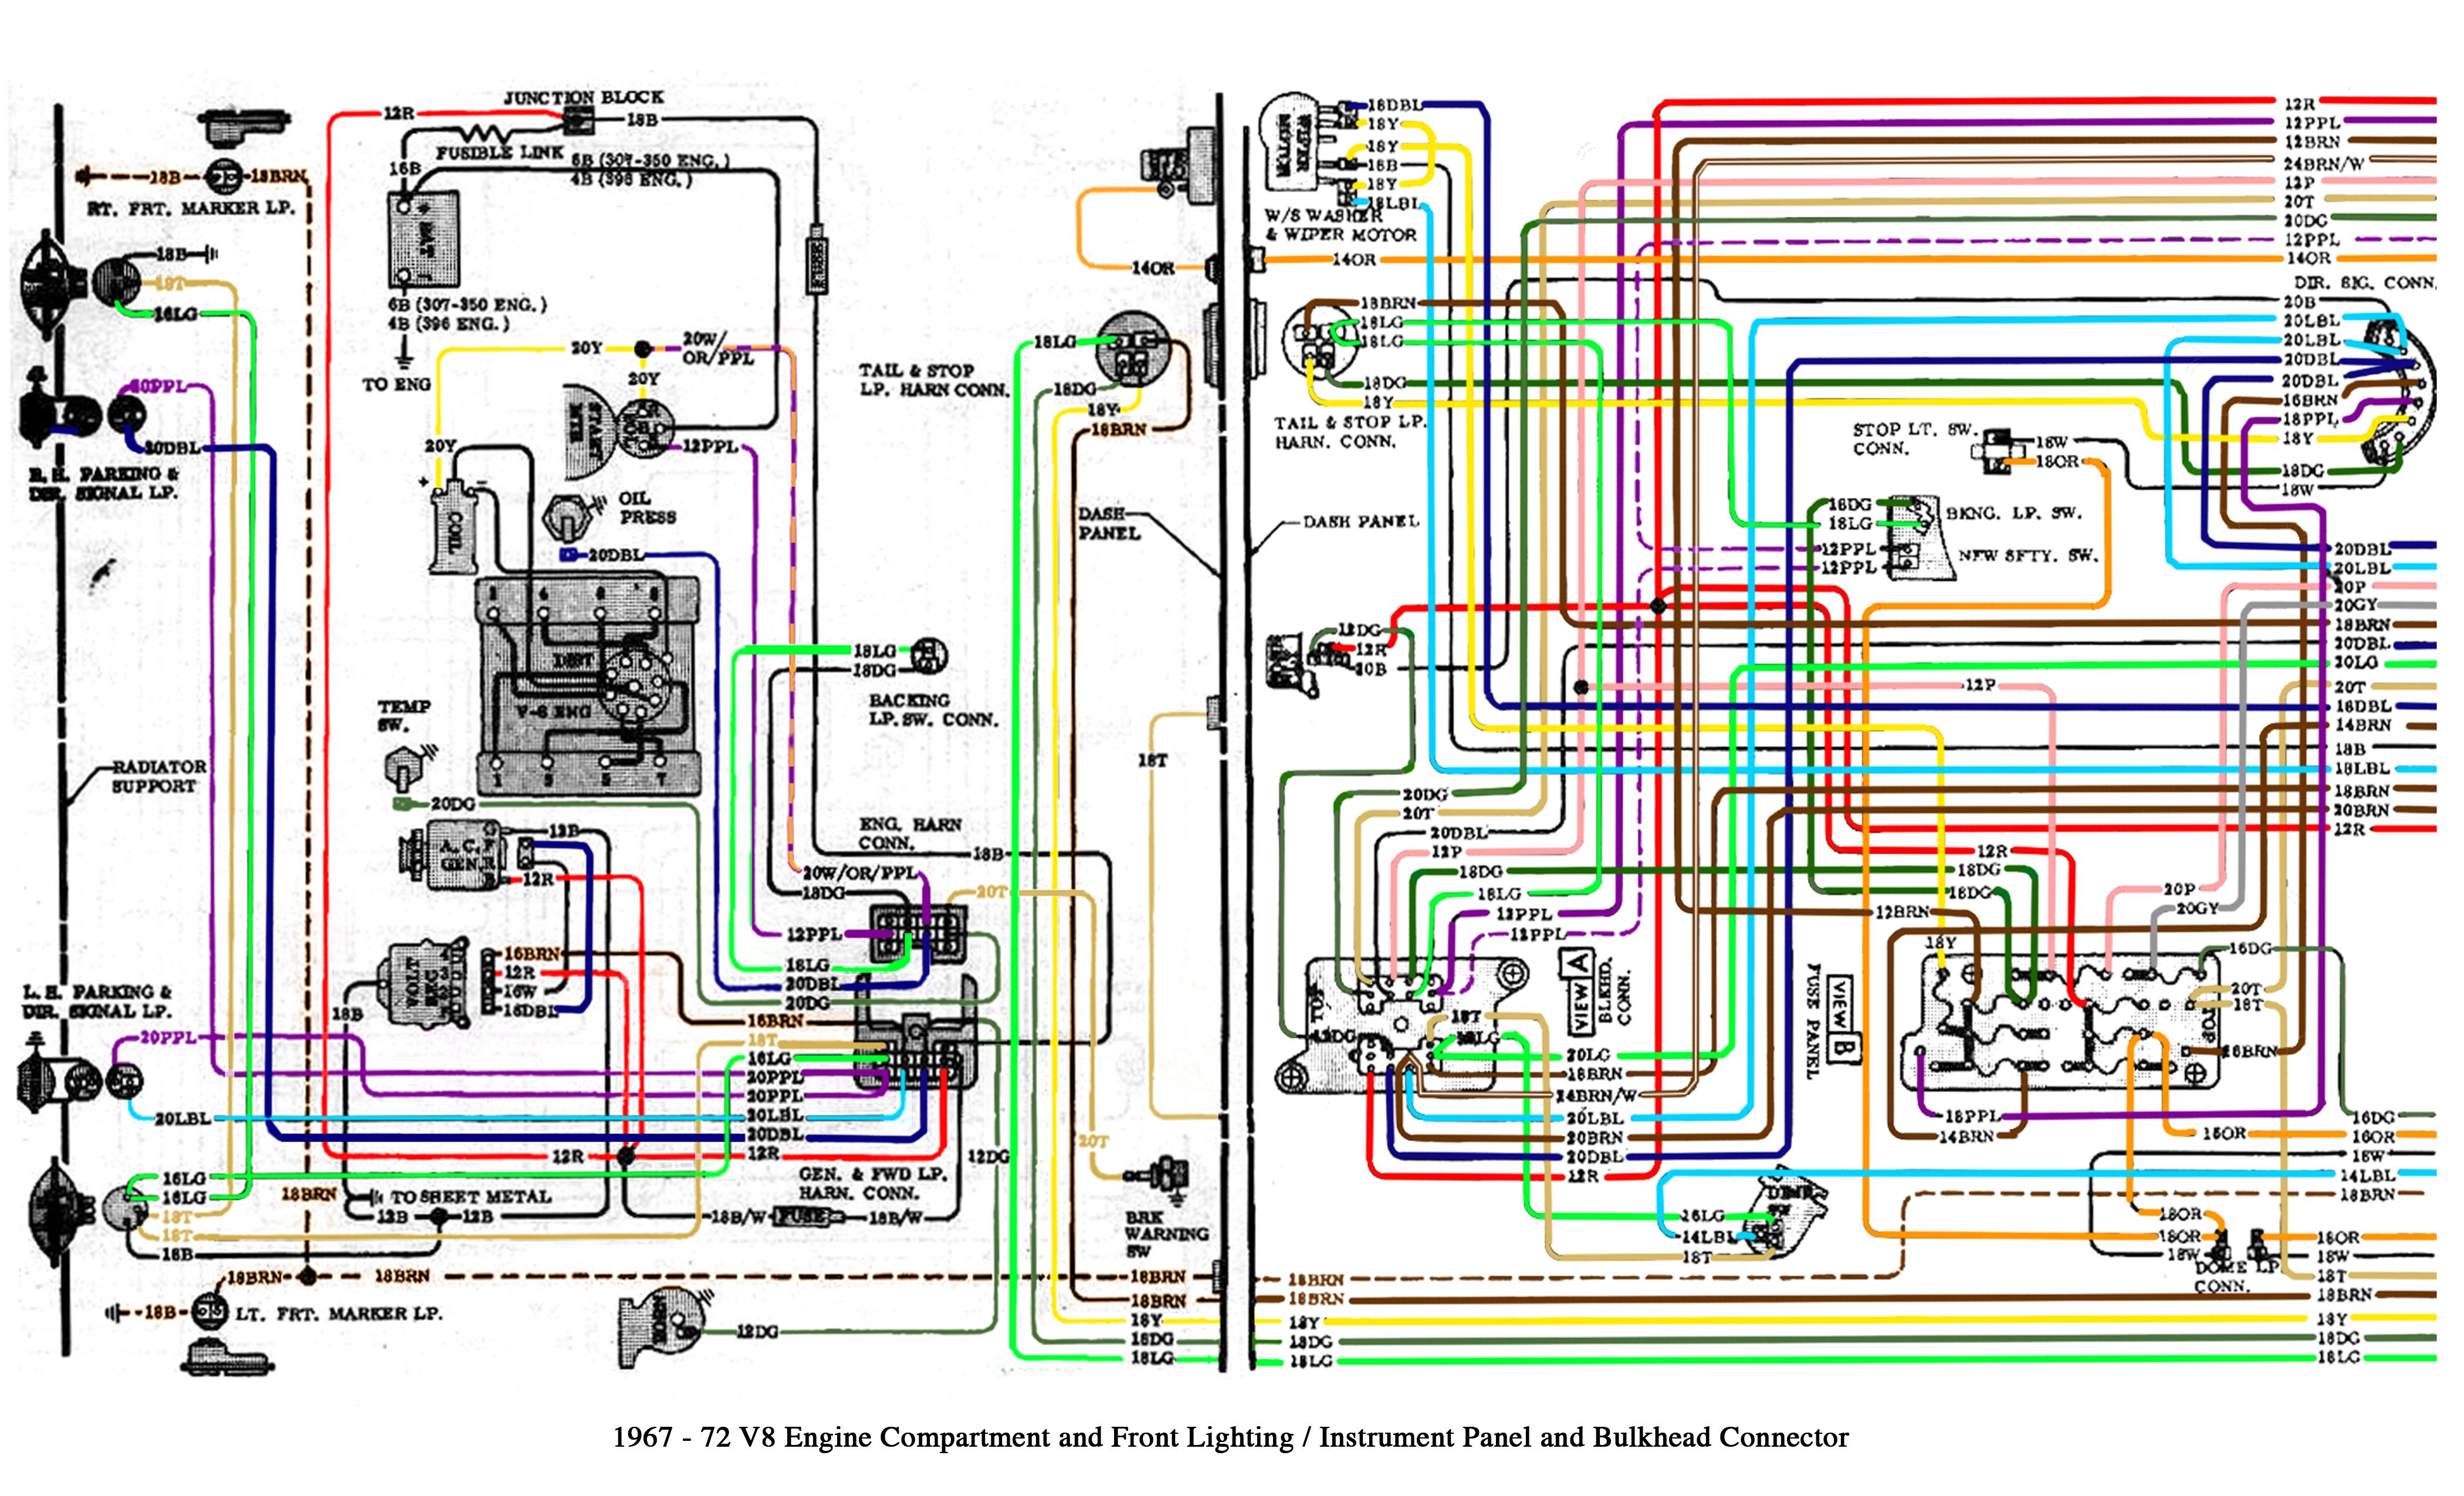 Color Wiring Diagram Finished - The 1947 - Present Chevrolet & Gmc - 1972 Chevy Truck Wiring Diagram